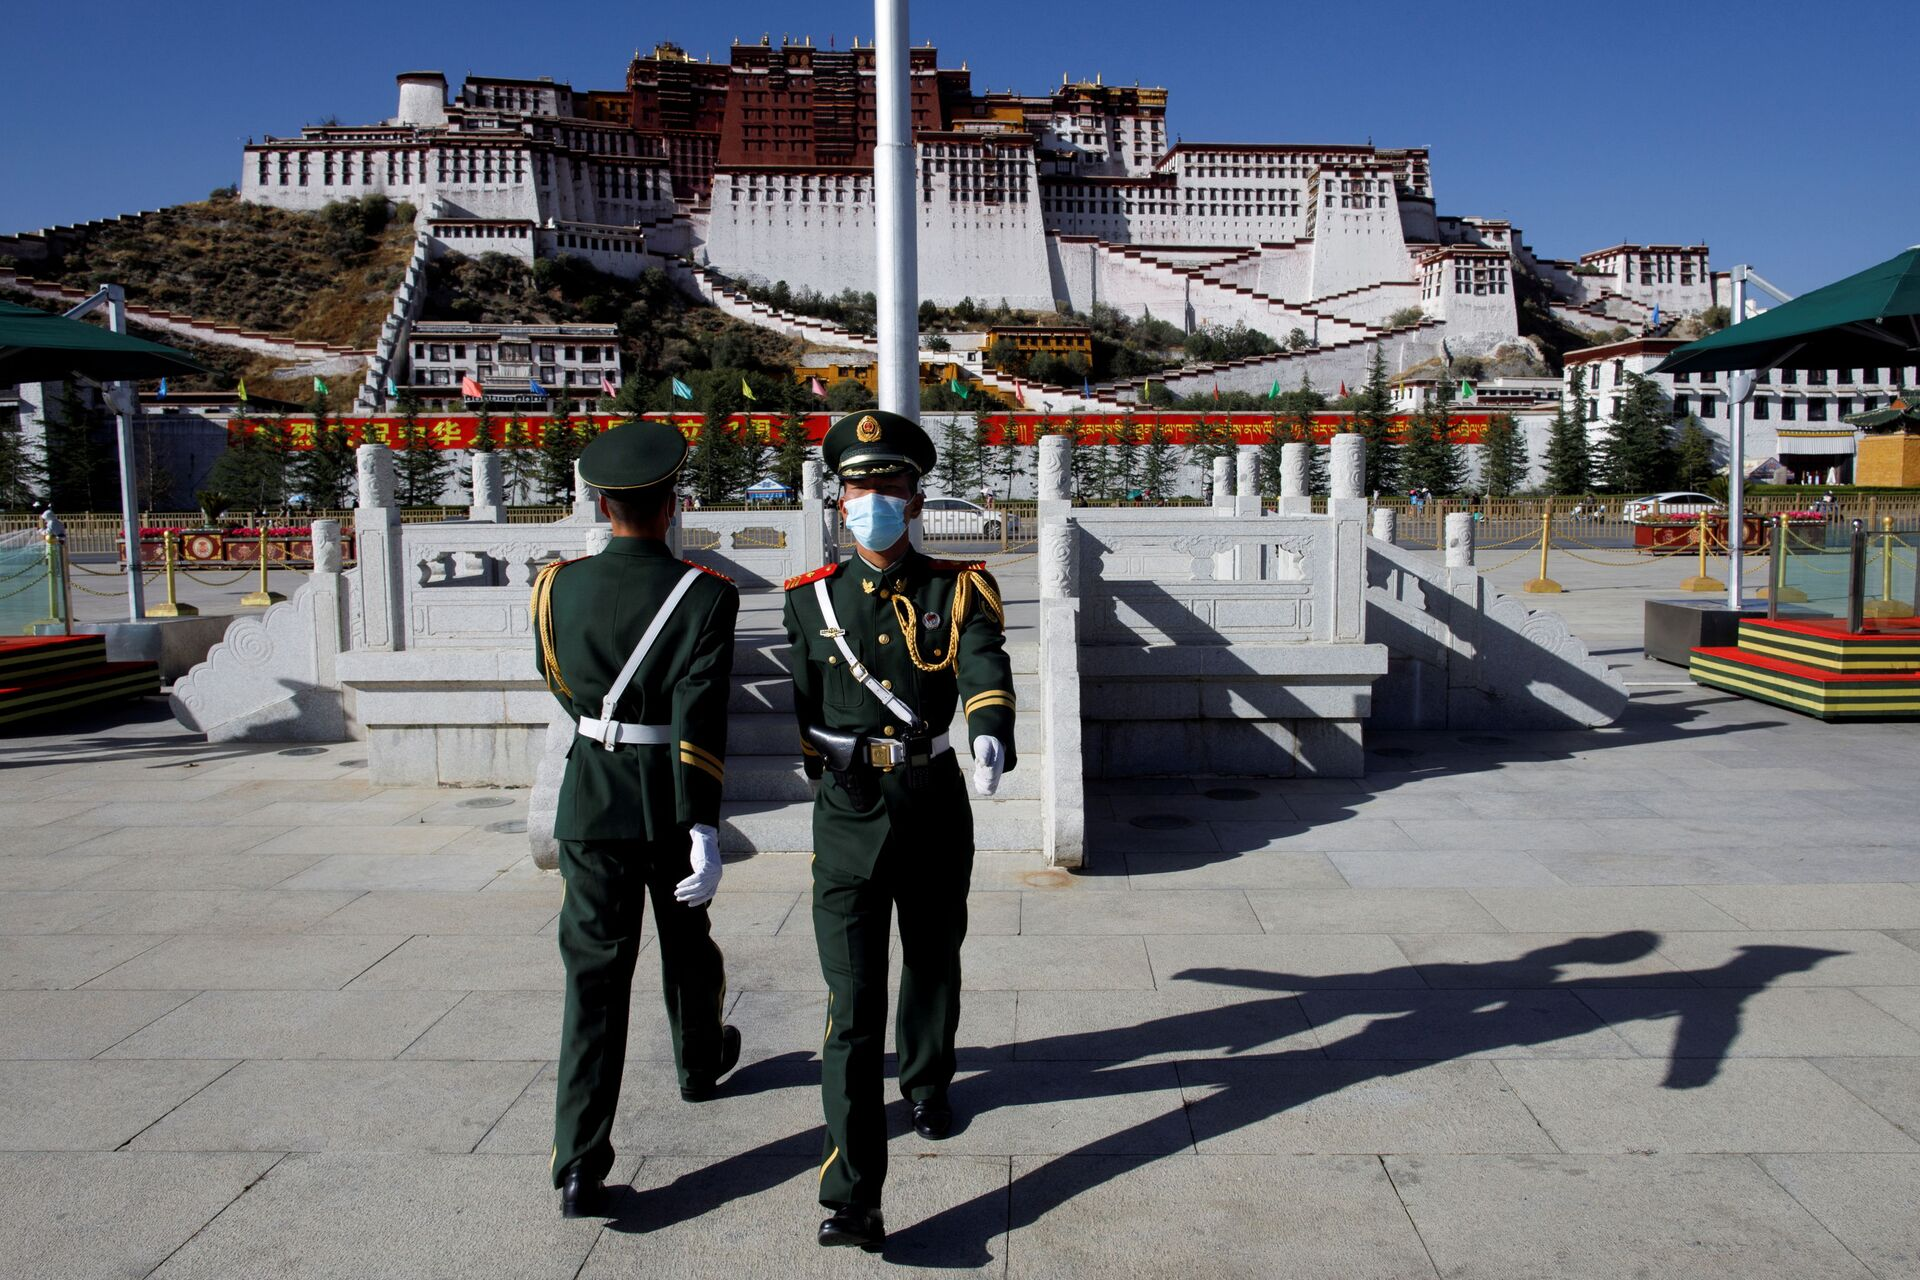 FILE PHOTO: Paramilitary police officers swap positions during a change of guard in front of Potala Palace in Lhasa, during a government-organised tour to Tibet Autonomous Region, China, October 15, 2020. REUTERS/Thomas Peter/File Photo - Sputnik International, 1920, 07.09.2021